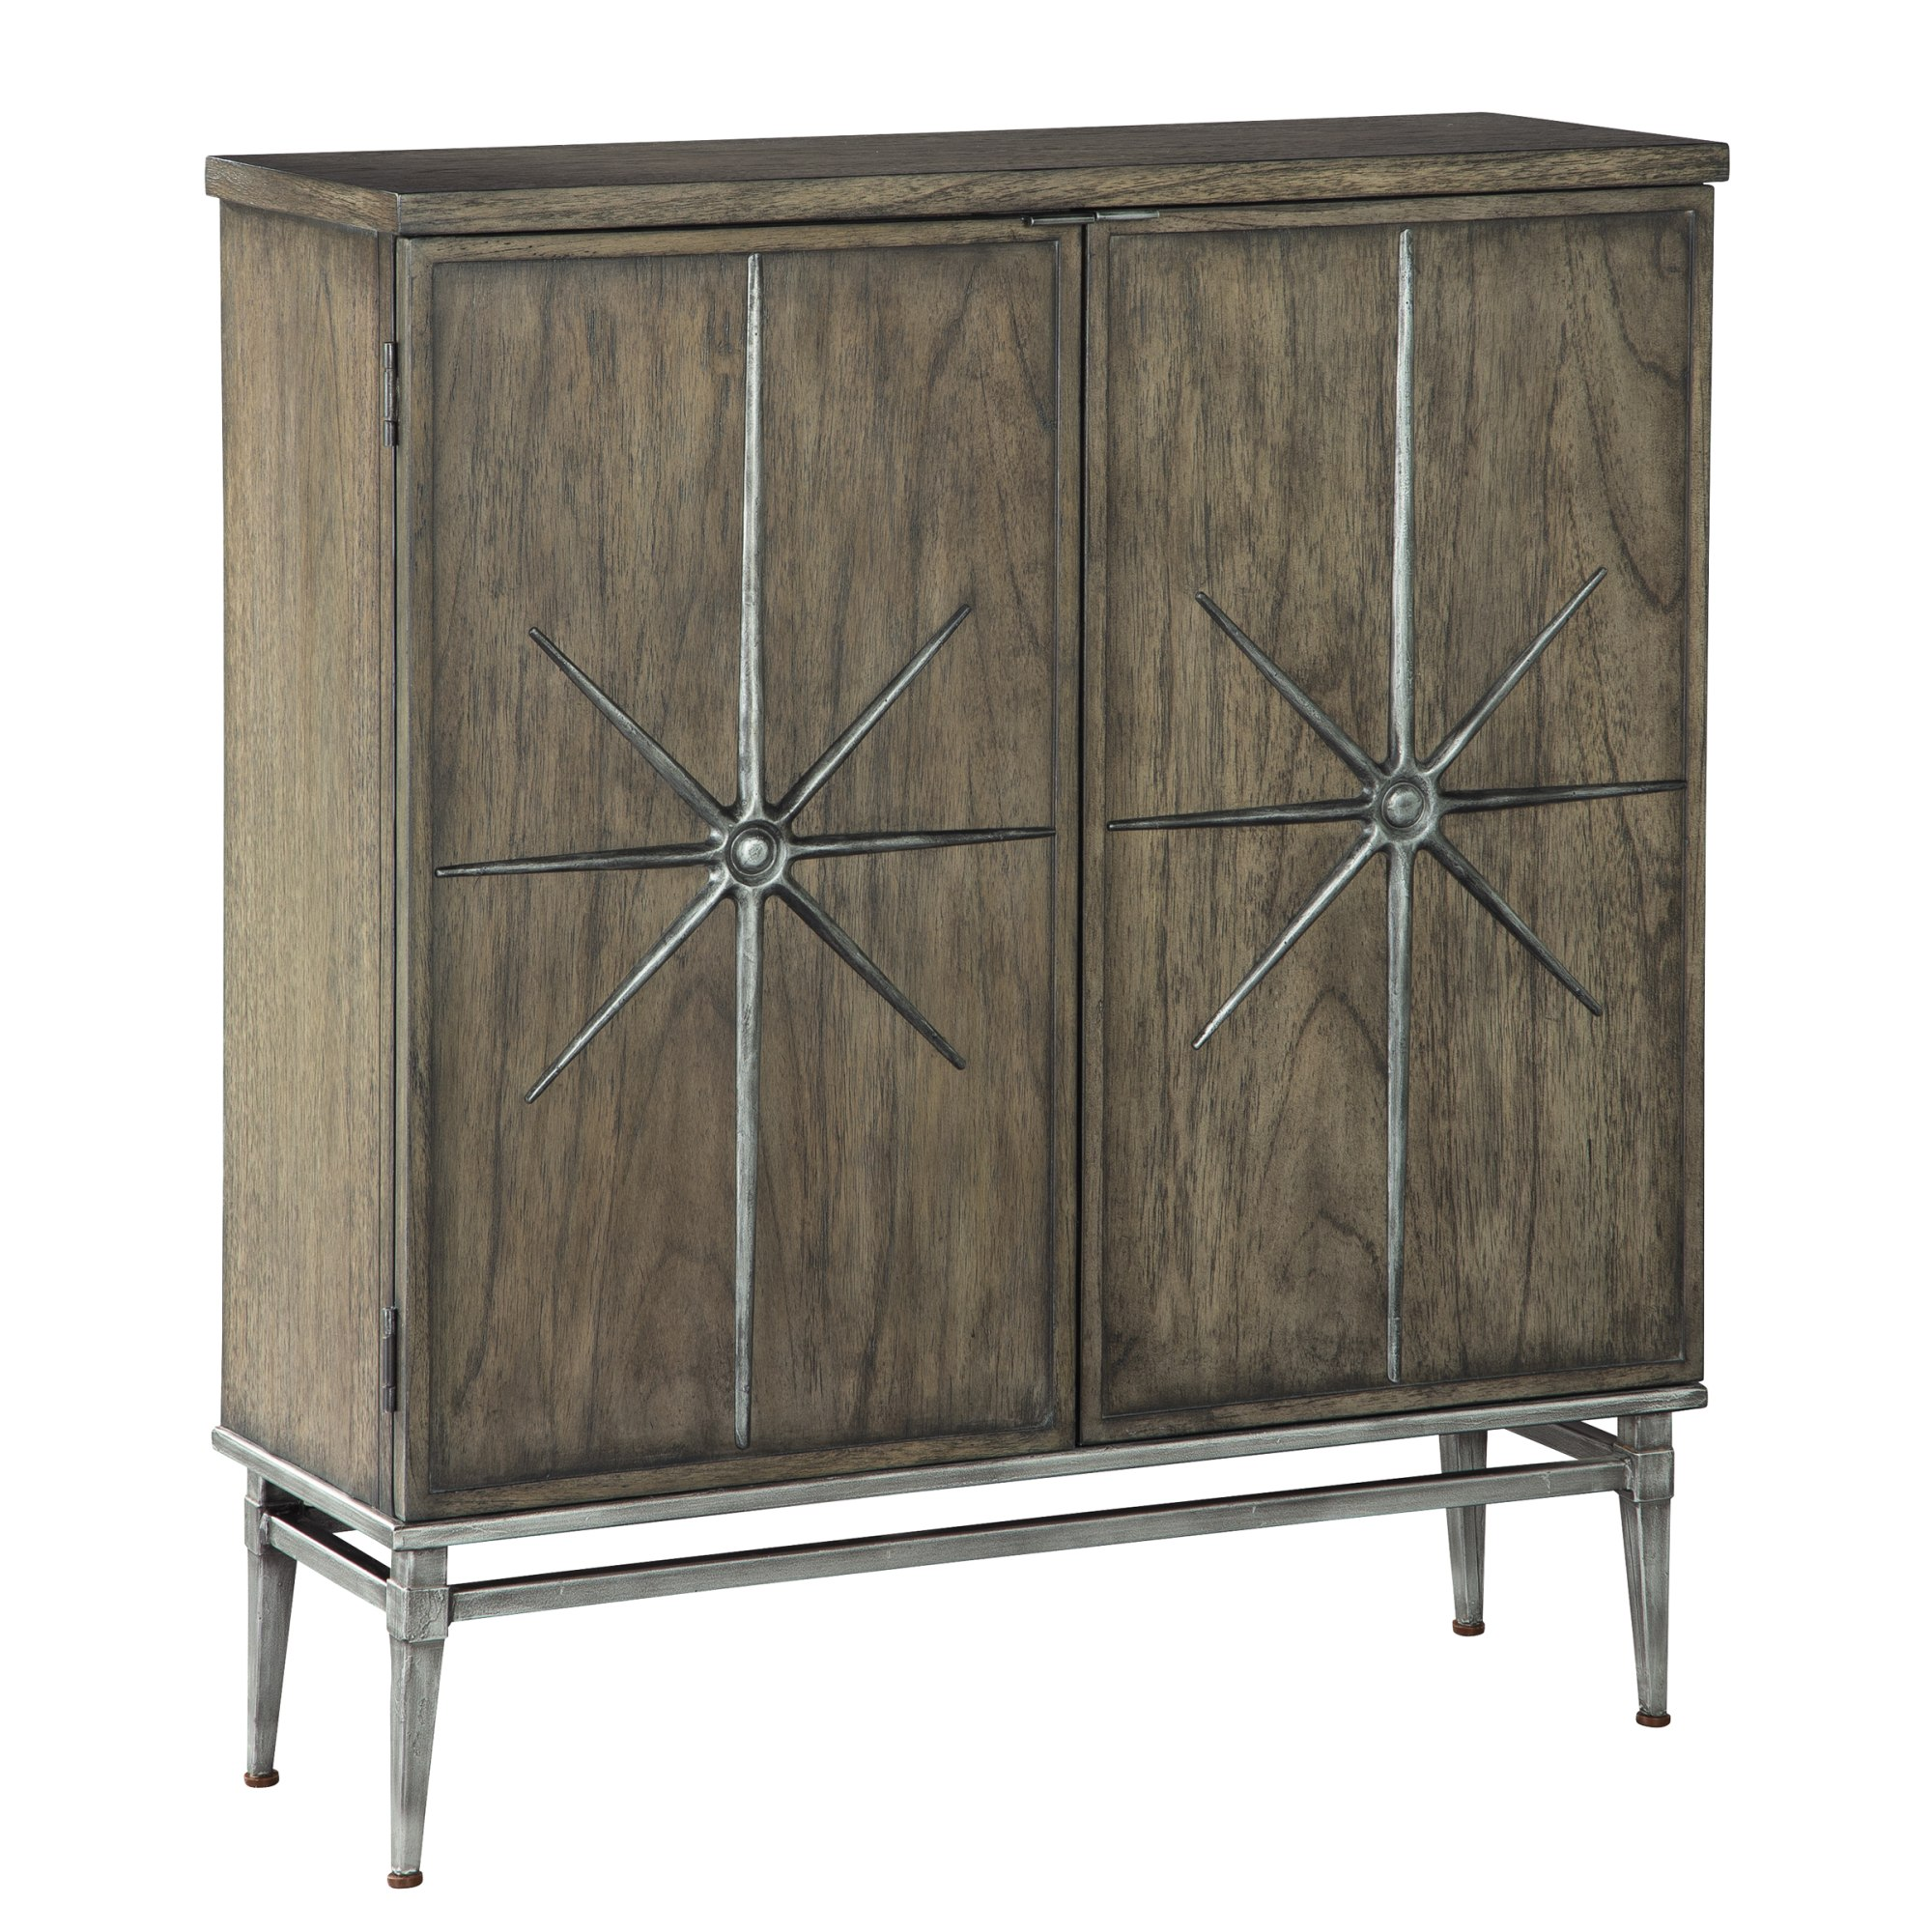 Image for 2-8023 Two Door Star Entertainment Center from Hekman Official Website